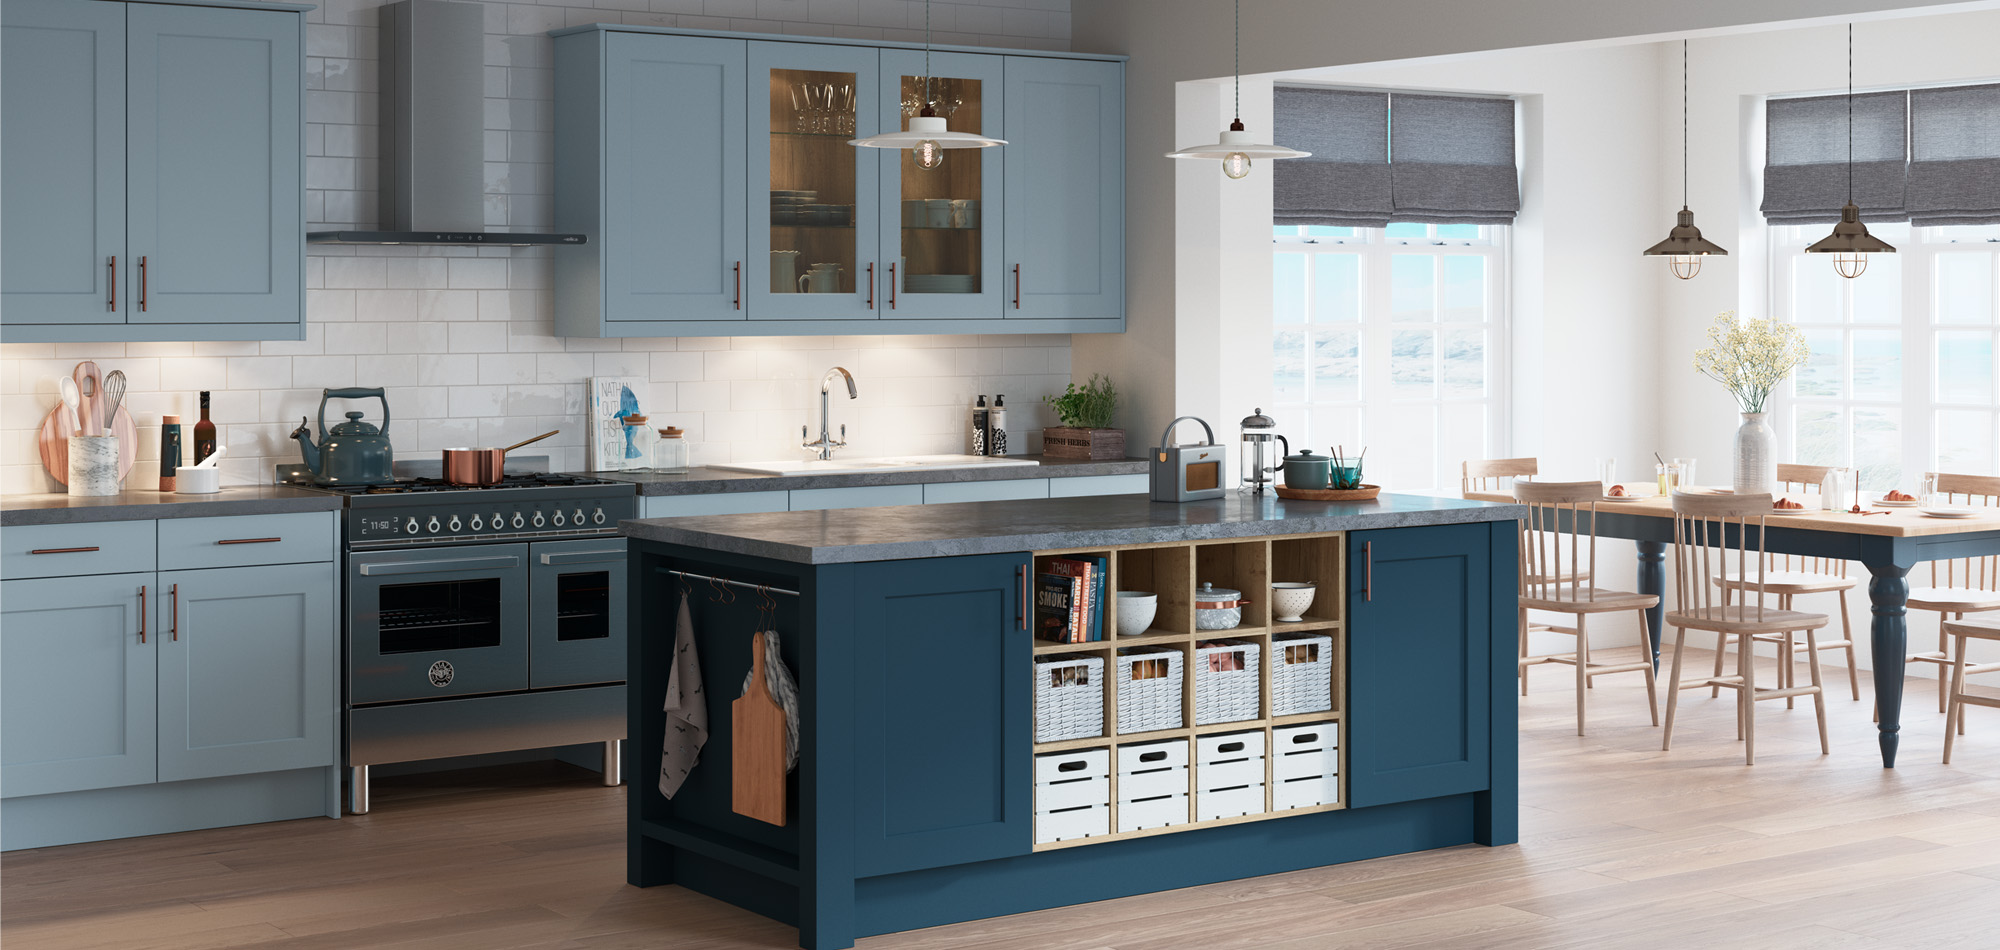 Town And Country >> Town Country Collection Shaker Kitchens Mereway Kitchens